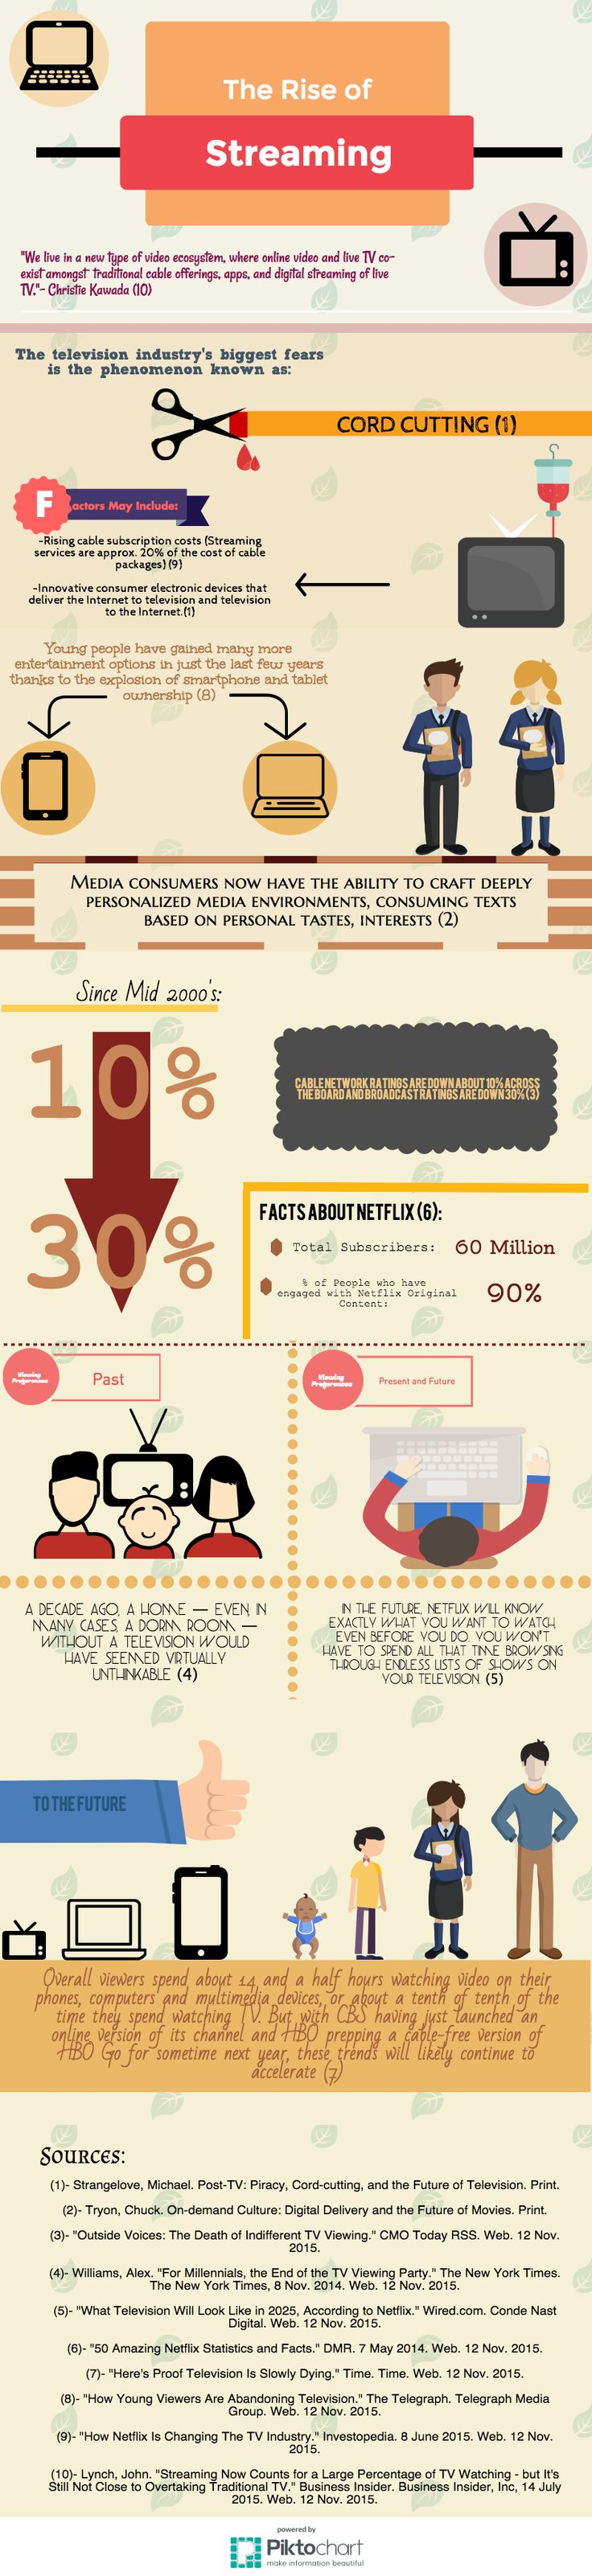 Infographic for FILM 240 by Justin